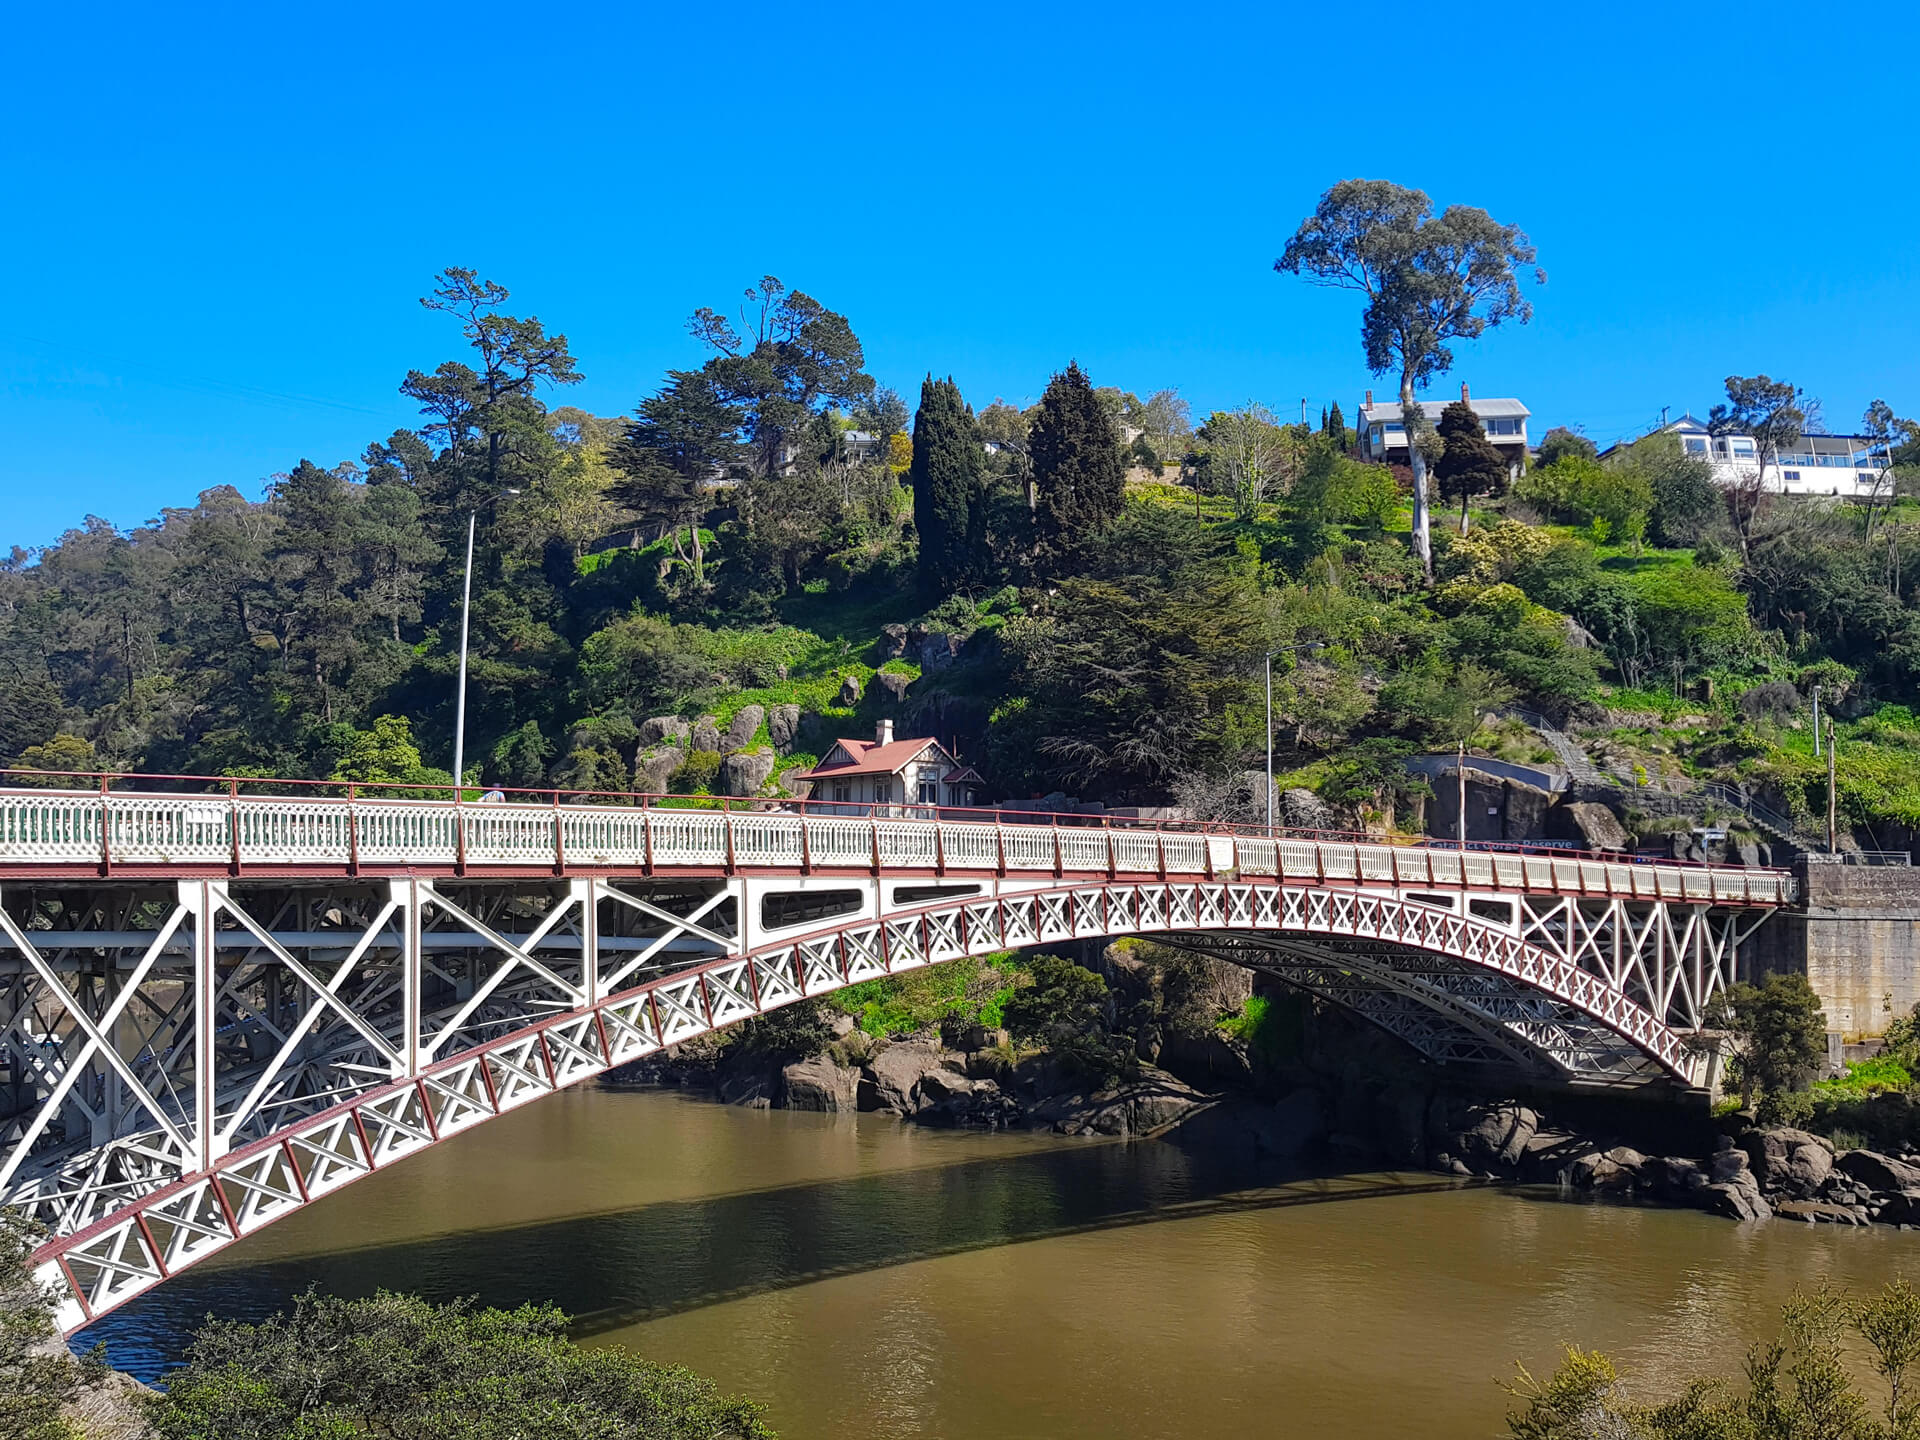 King Bridge in Launceston